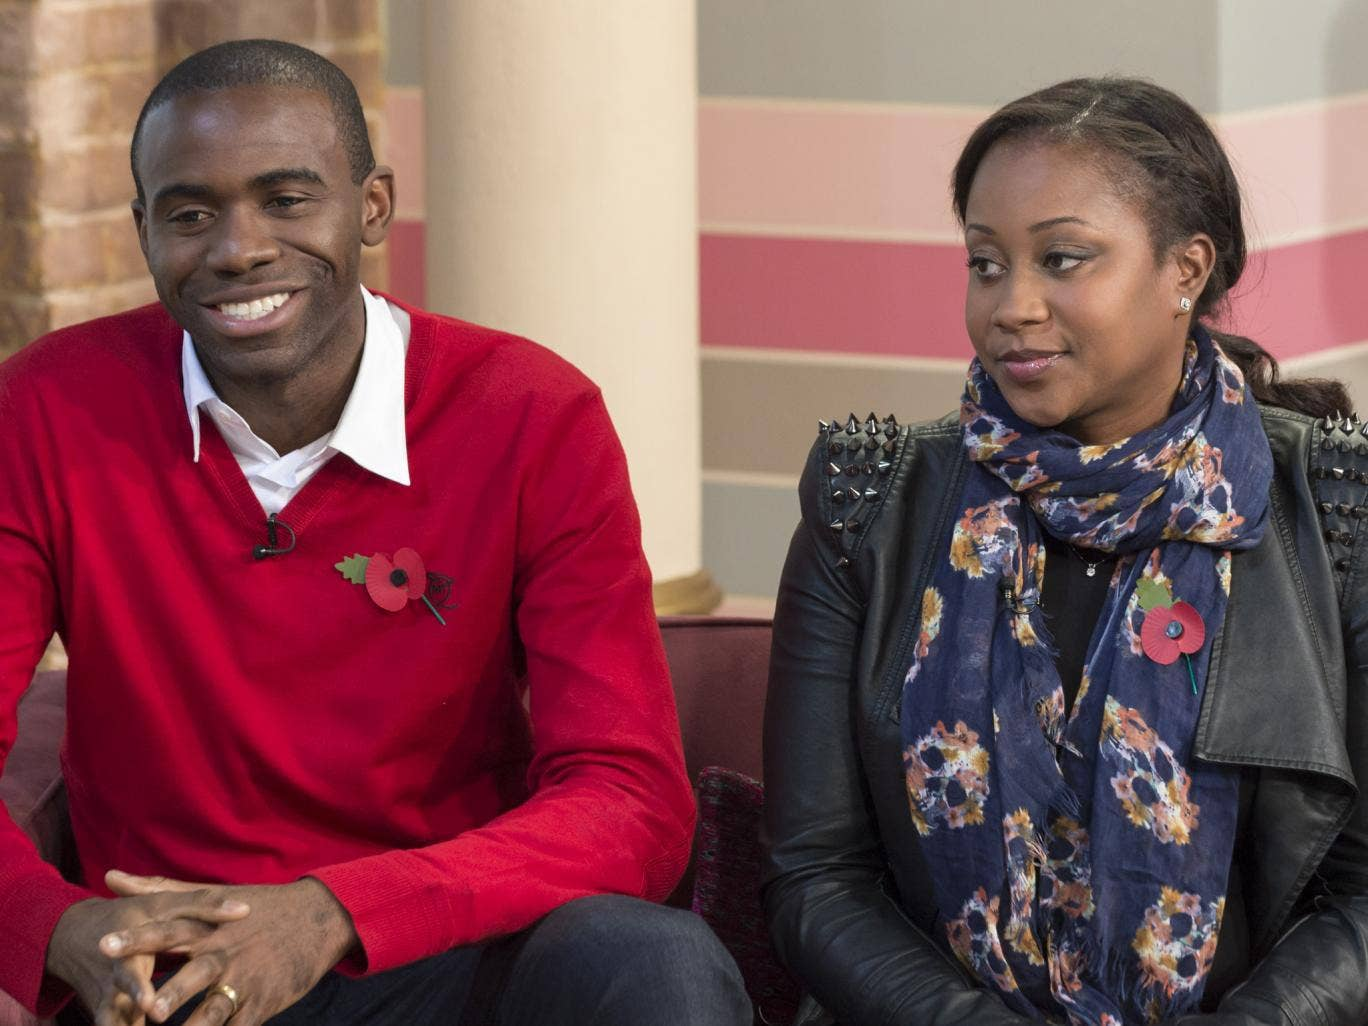 Fabrice Muamba and wife Shauna, pictured here in November last year, are said to be 'elated' at the prospect of a new baby